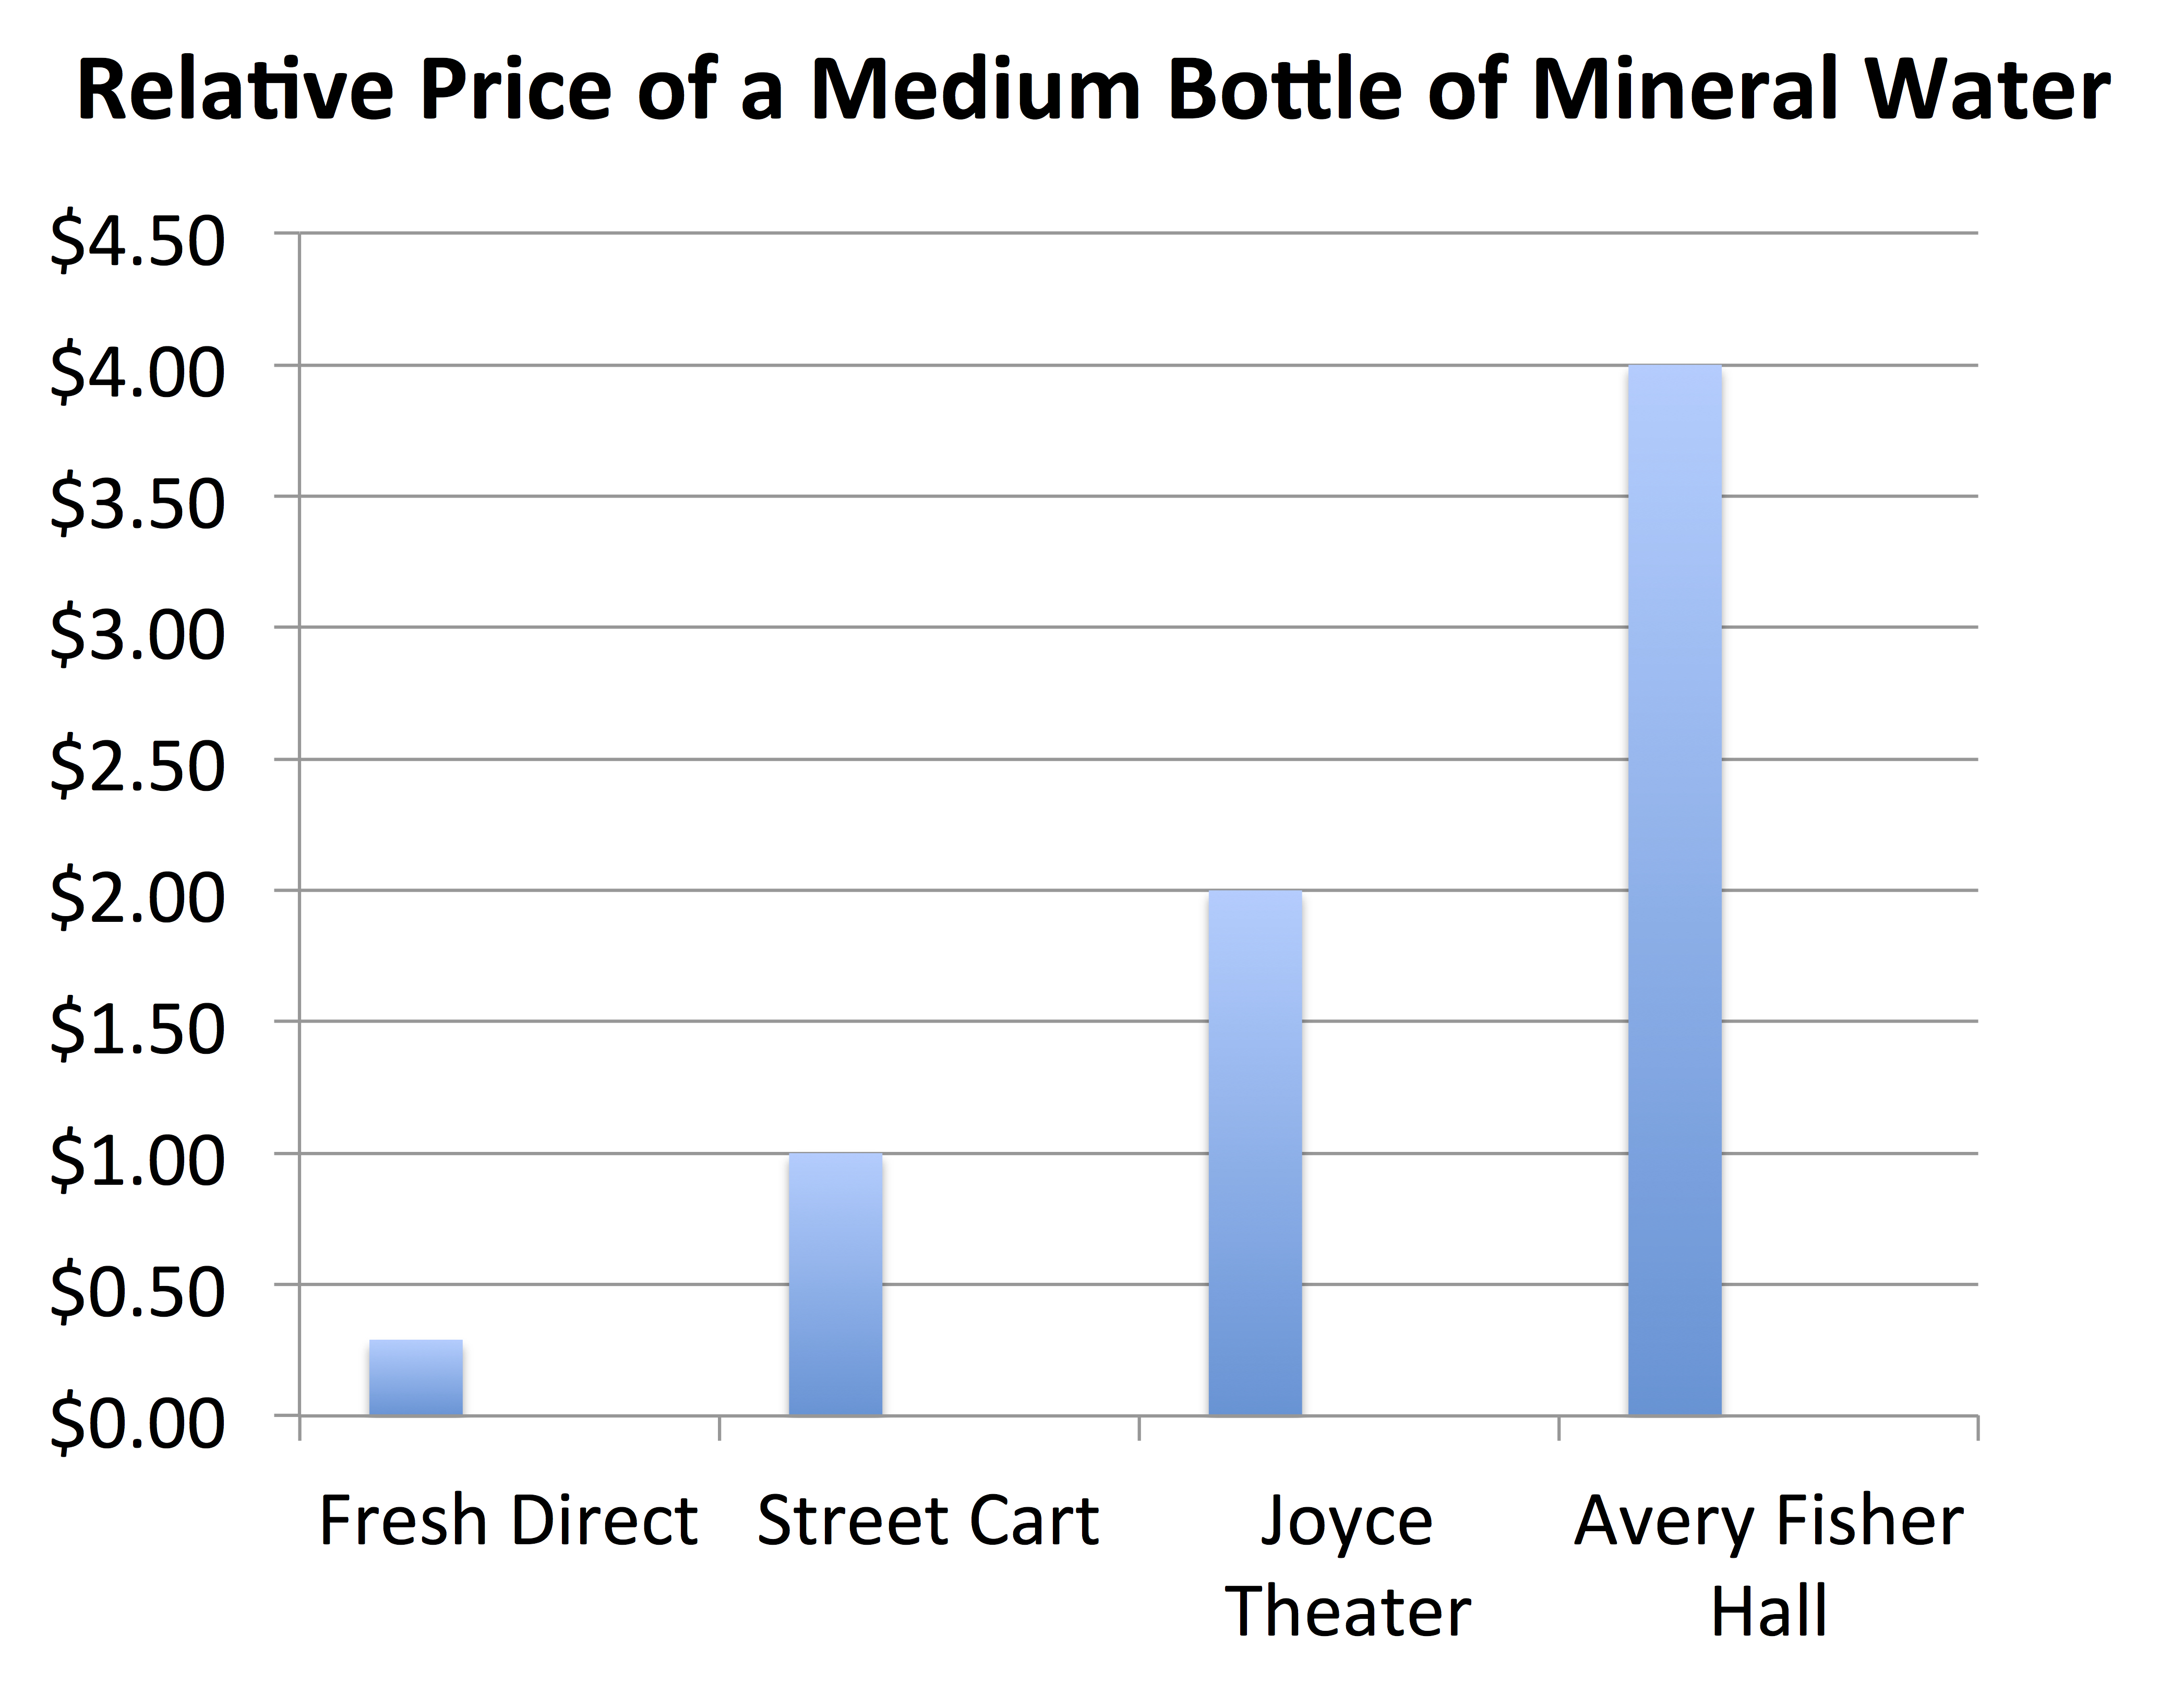 How Much Are You Willing To Pay For A Bottle Of Mineral